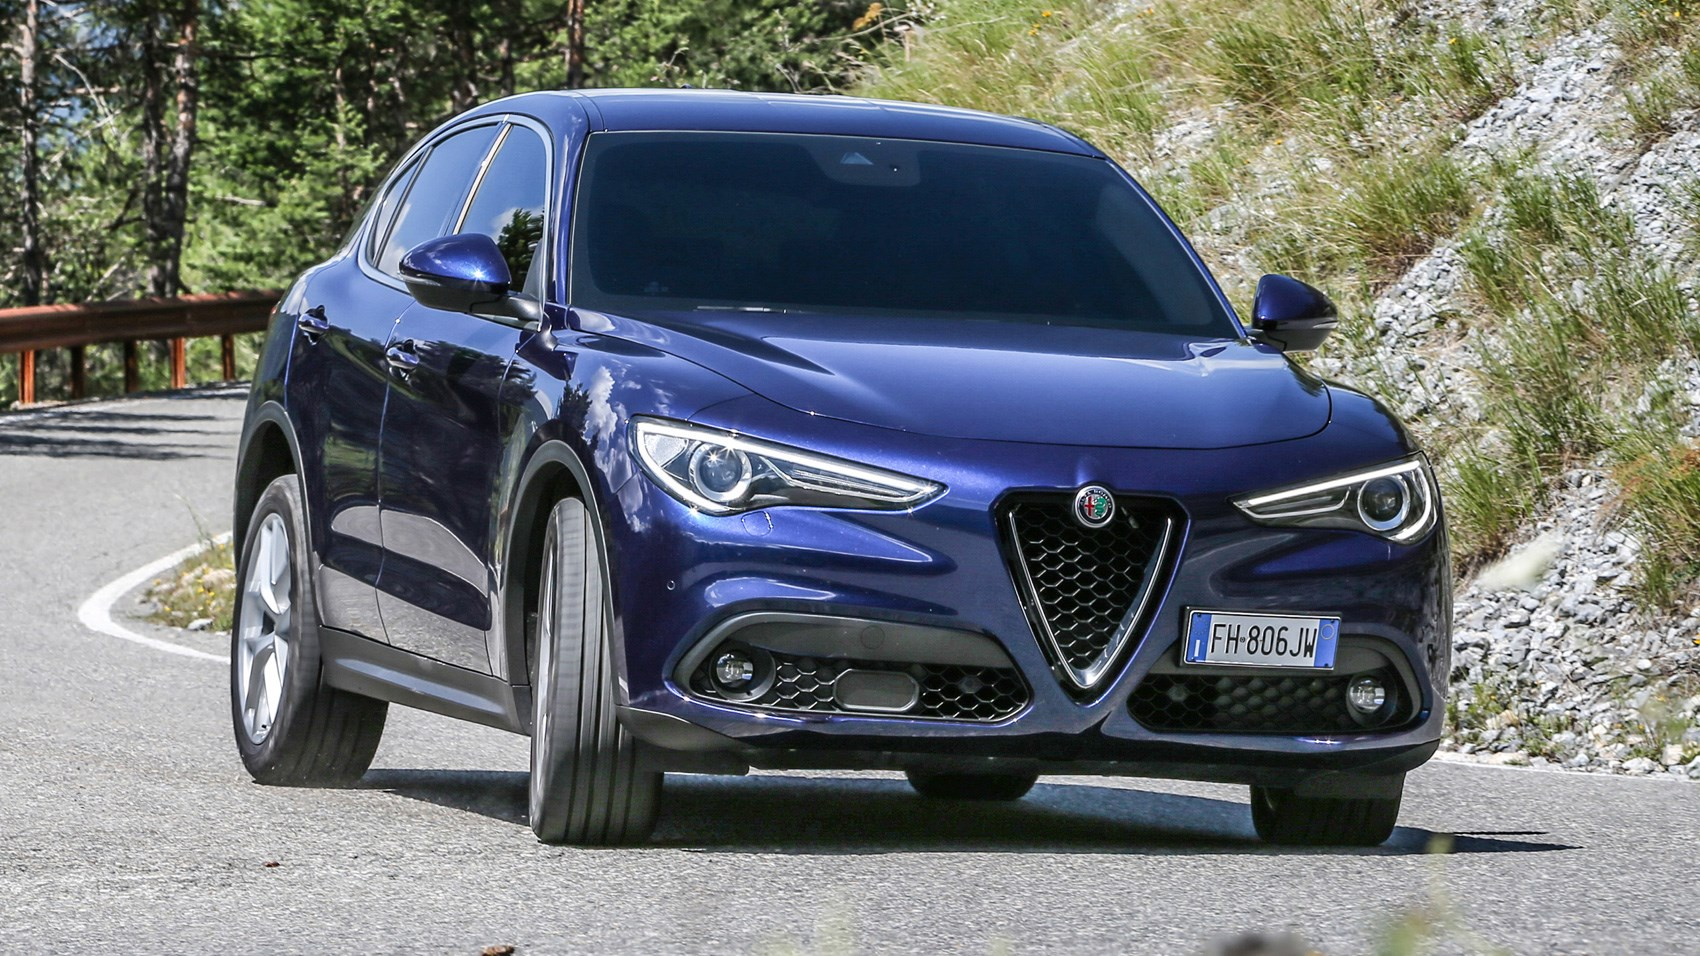 alfa romeo stelvio 2017 review car magazine. Black Bedroom Furniture Sets. Home Design Ideas